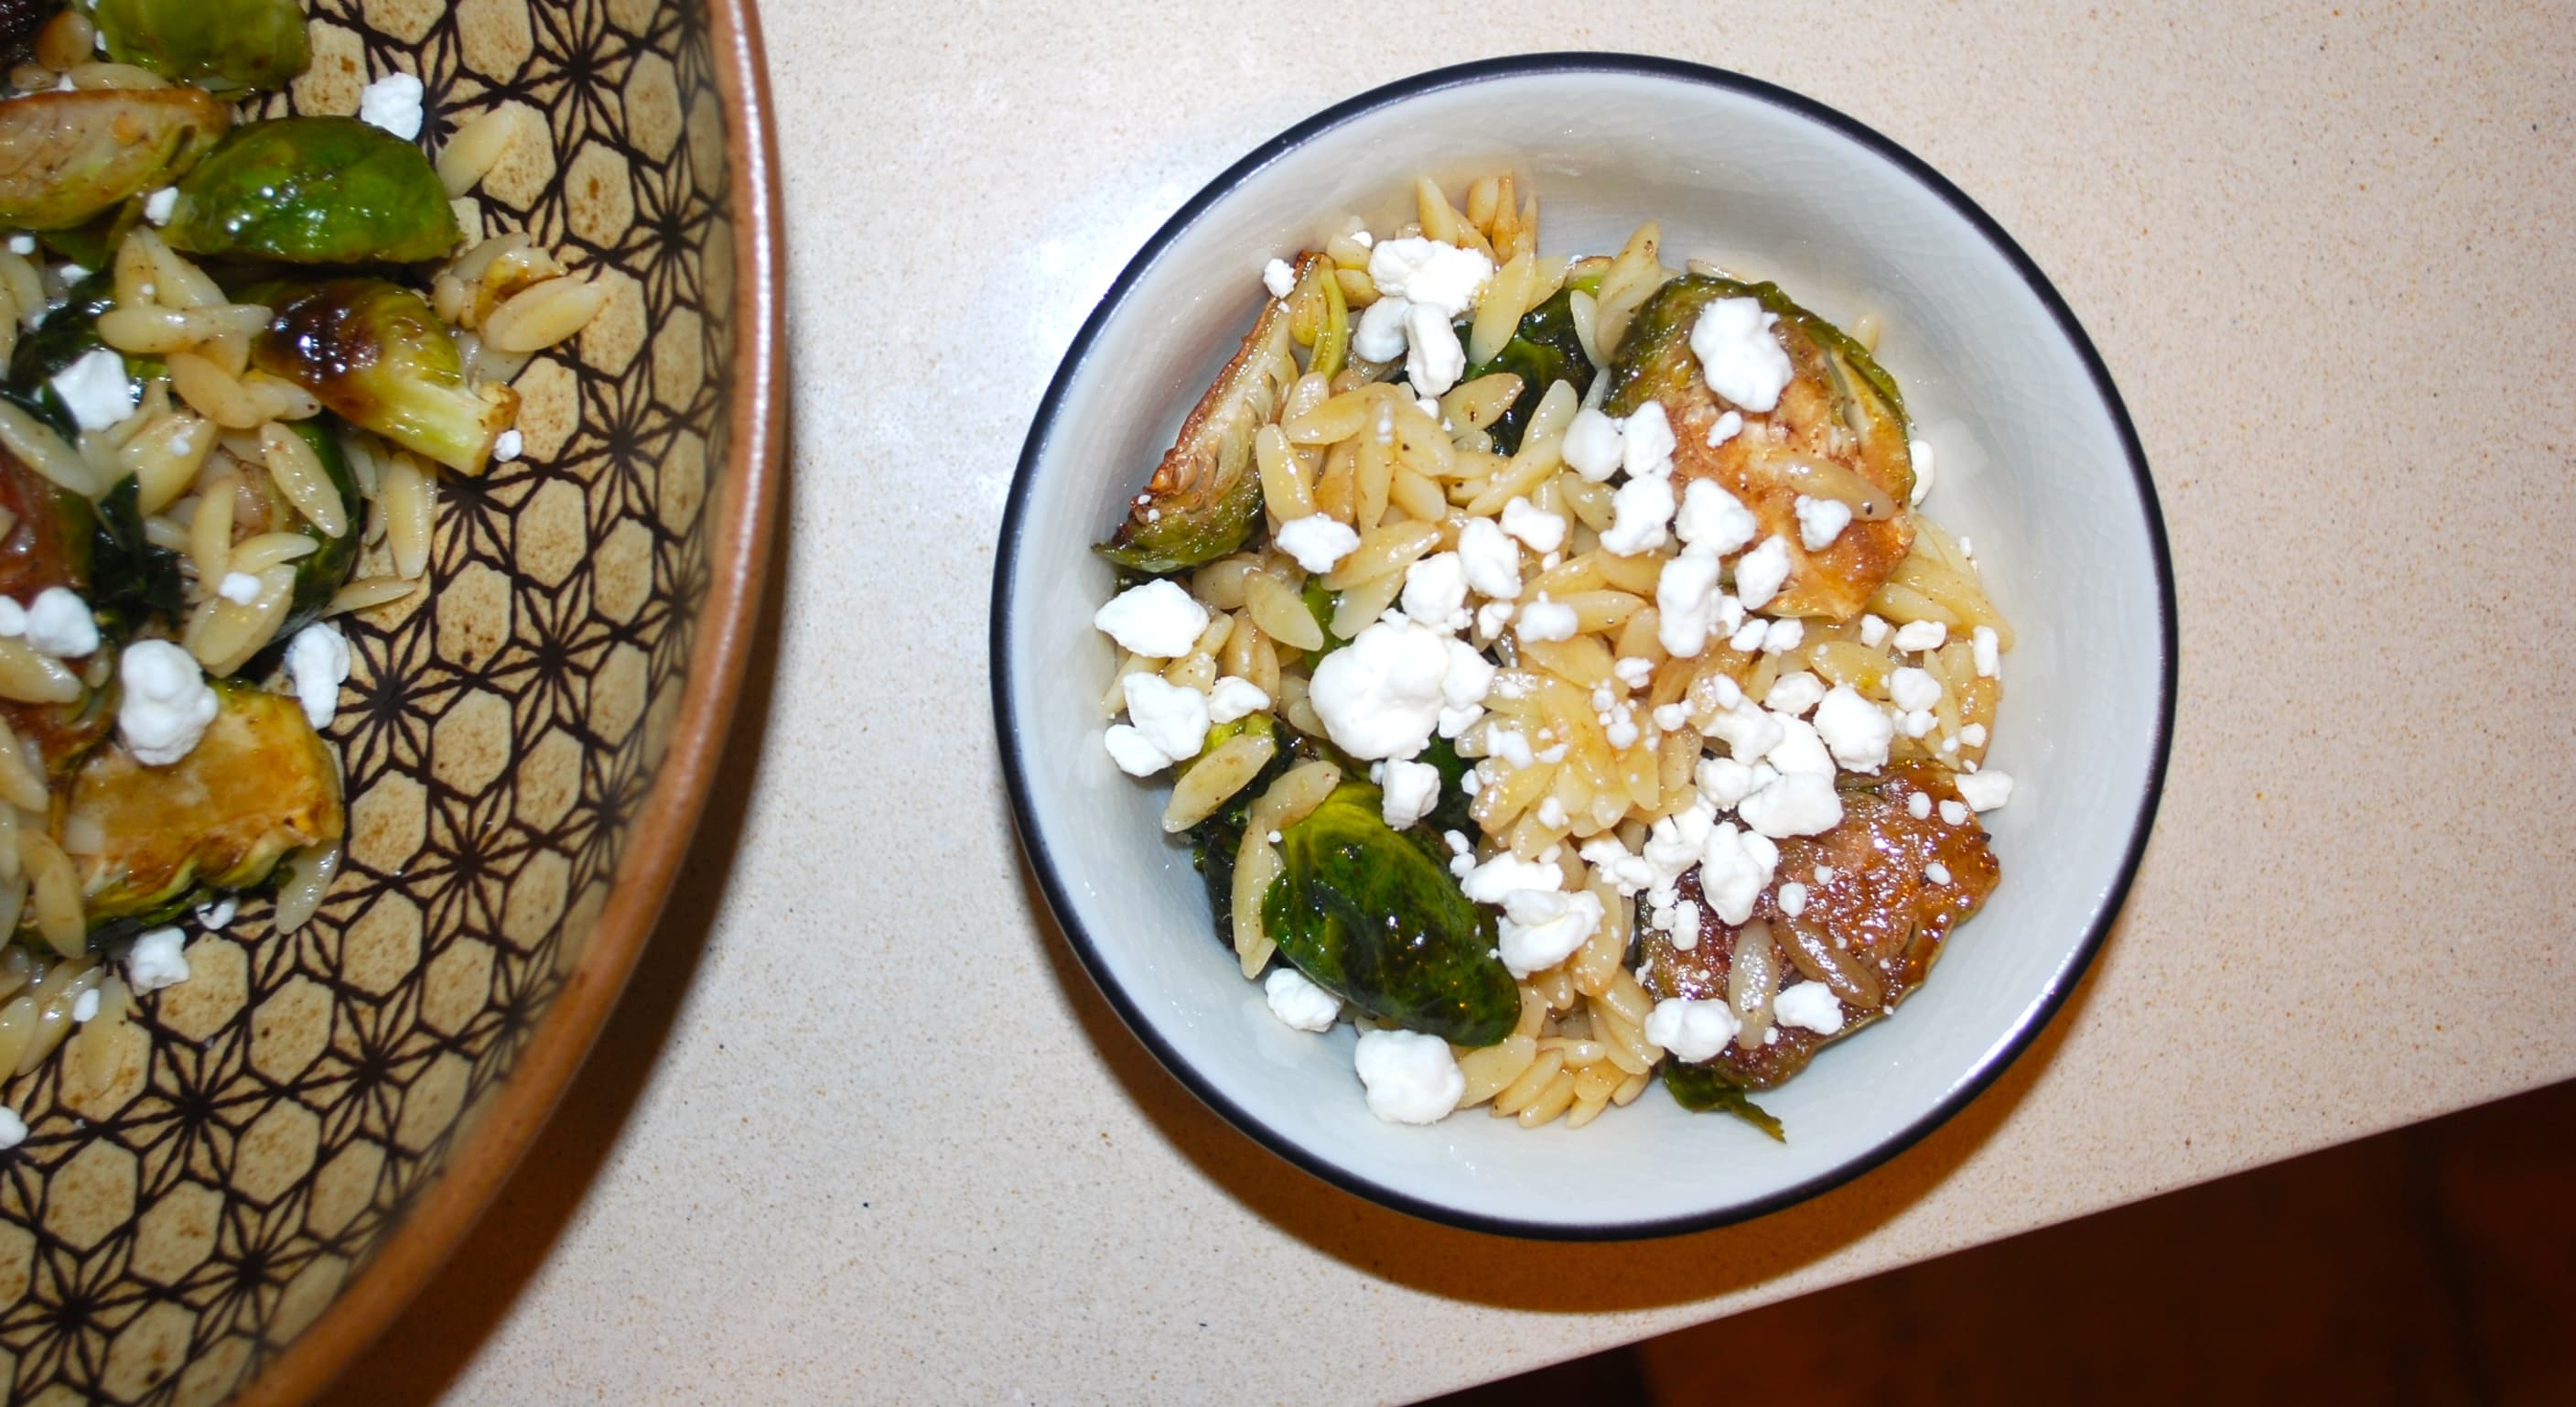 Lemon Orzo w/ Brussel Sprouts and Goat Cheese